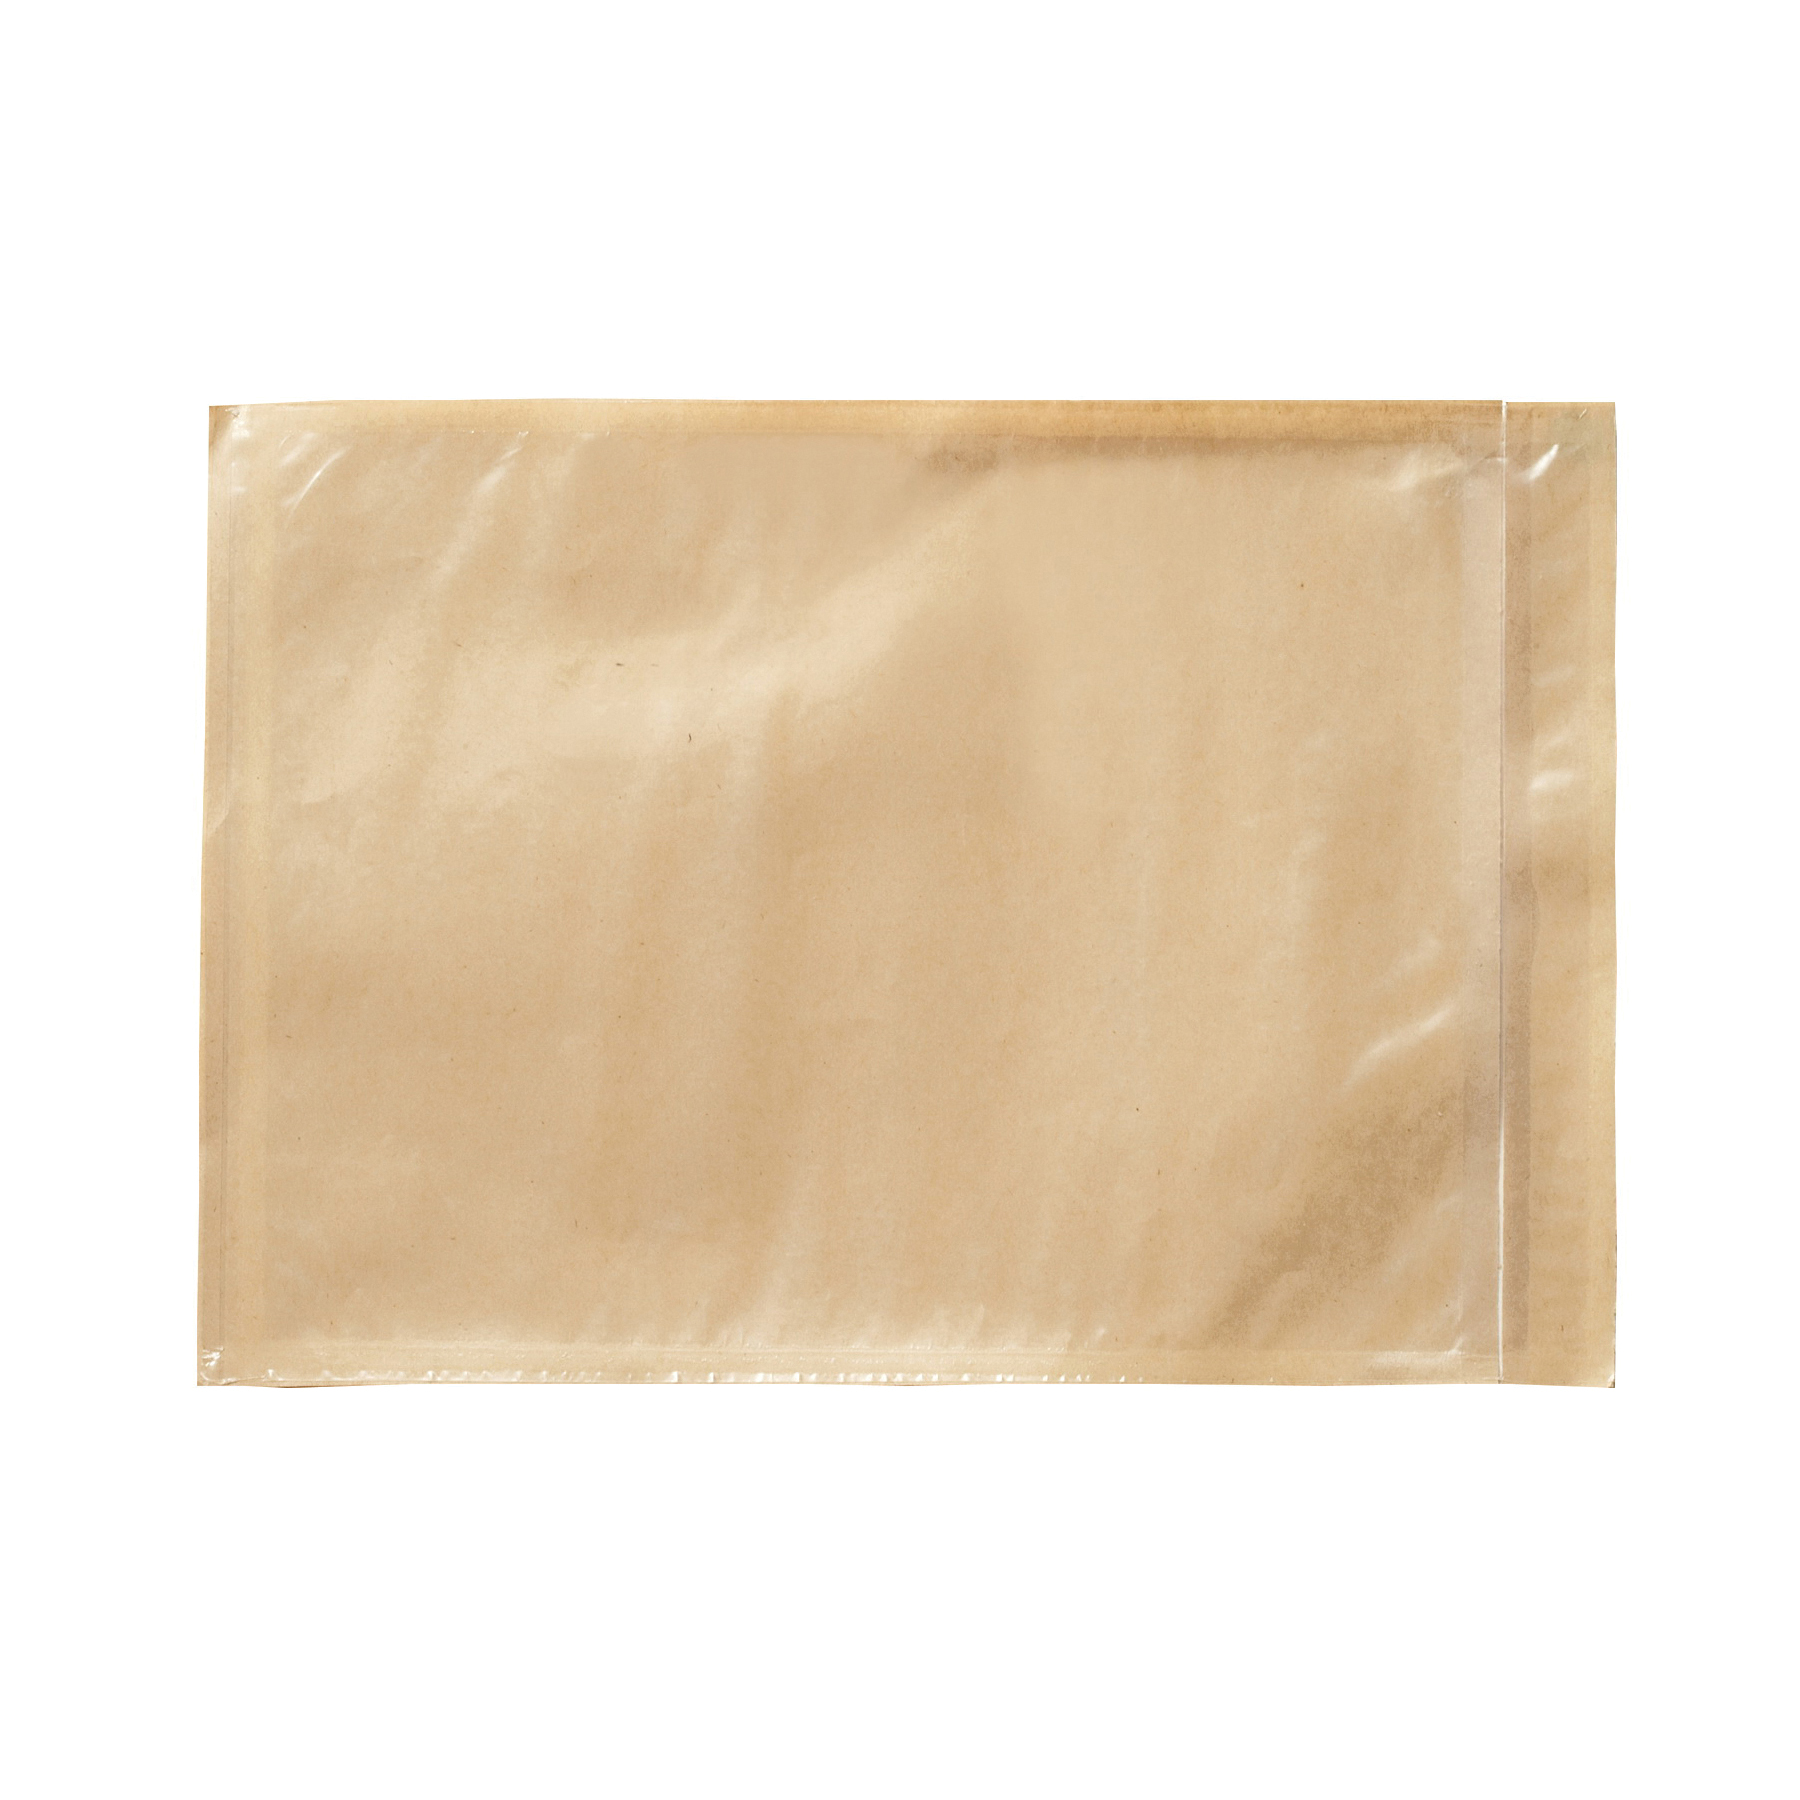 3M™ 021200-73779 Non-Printed Packing List Envelope, 10 in L x 7 in W, Polyethylene Film Backing, Clear